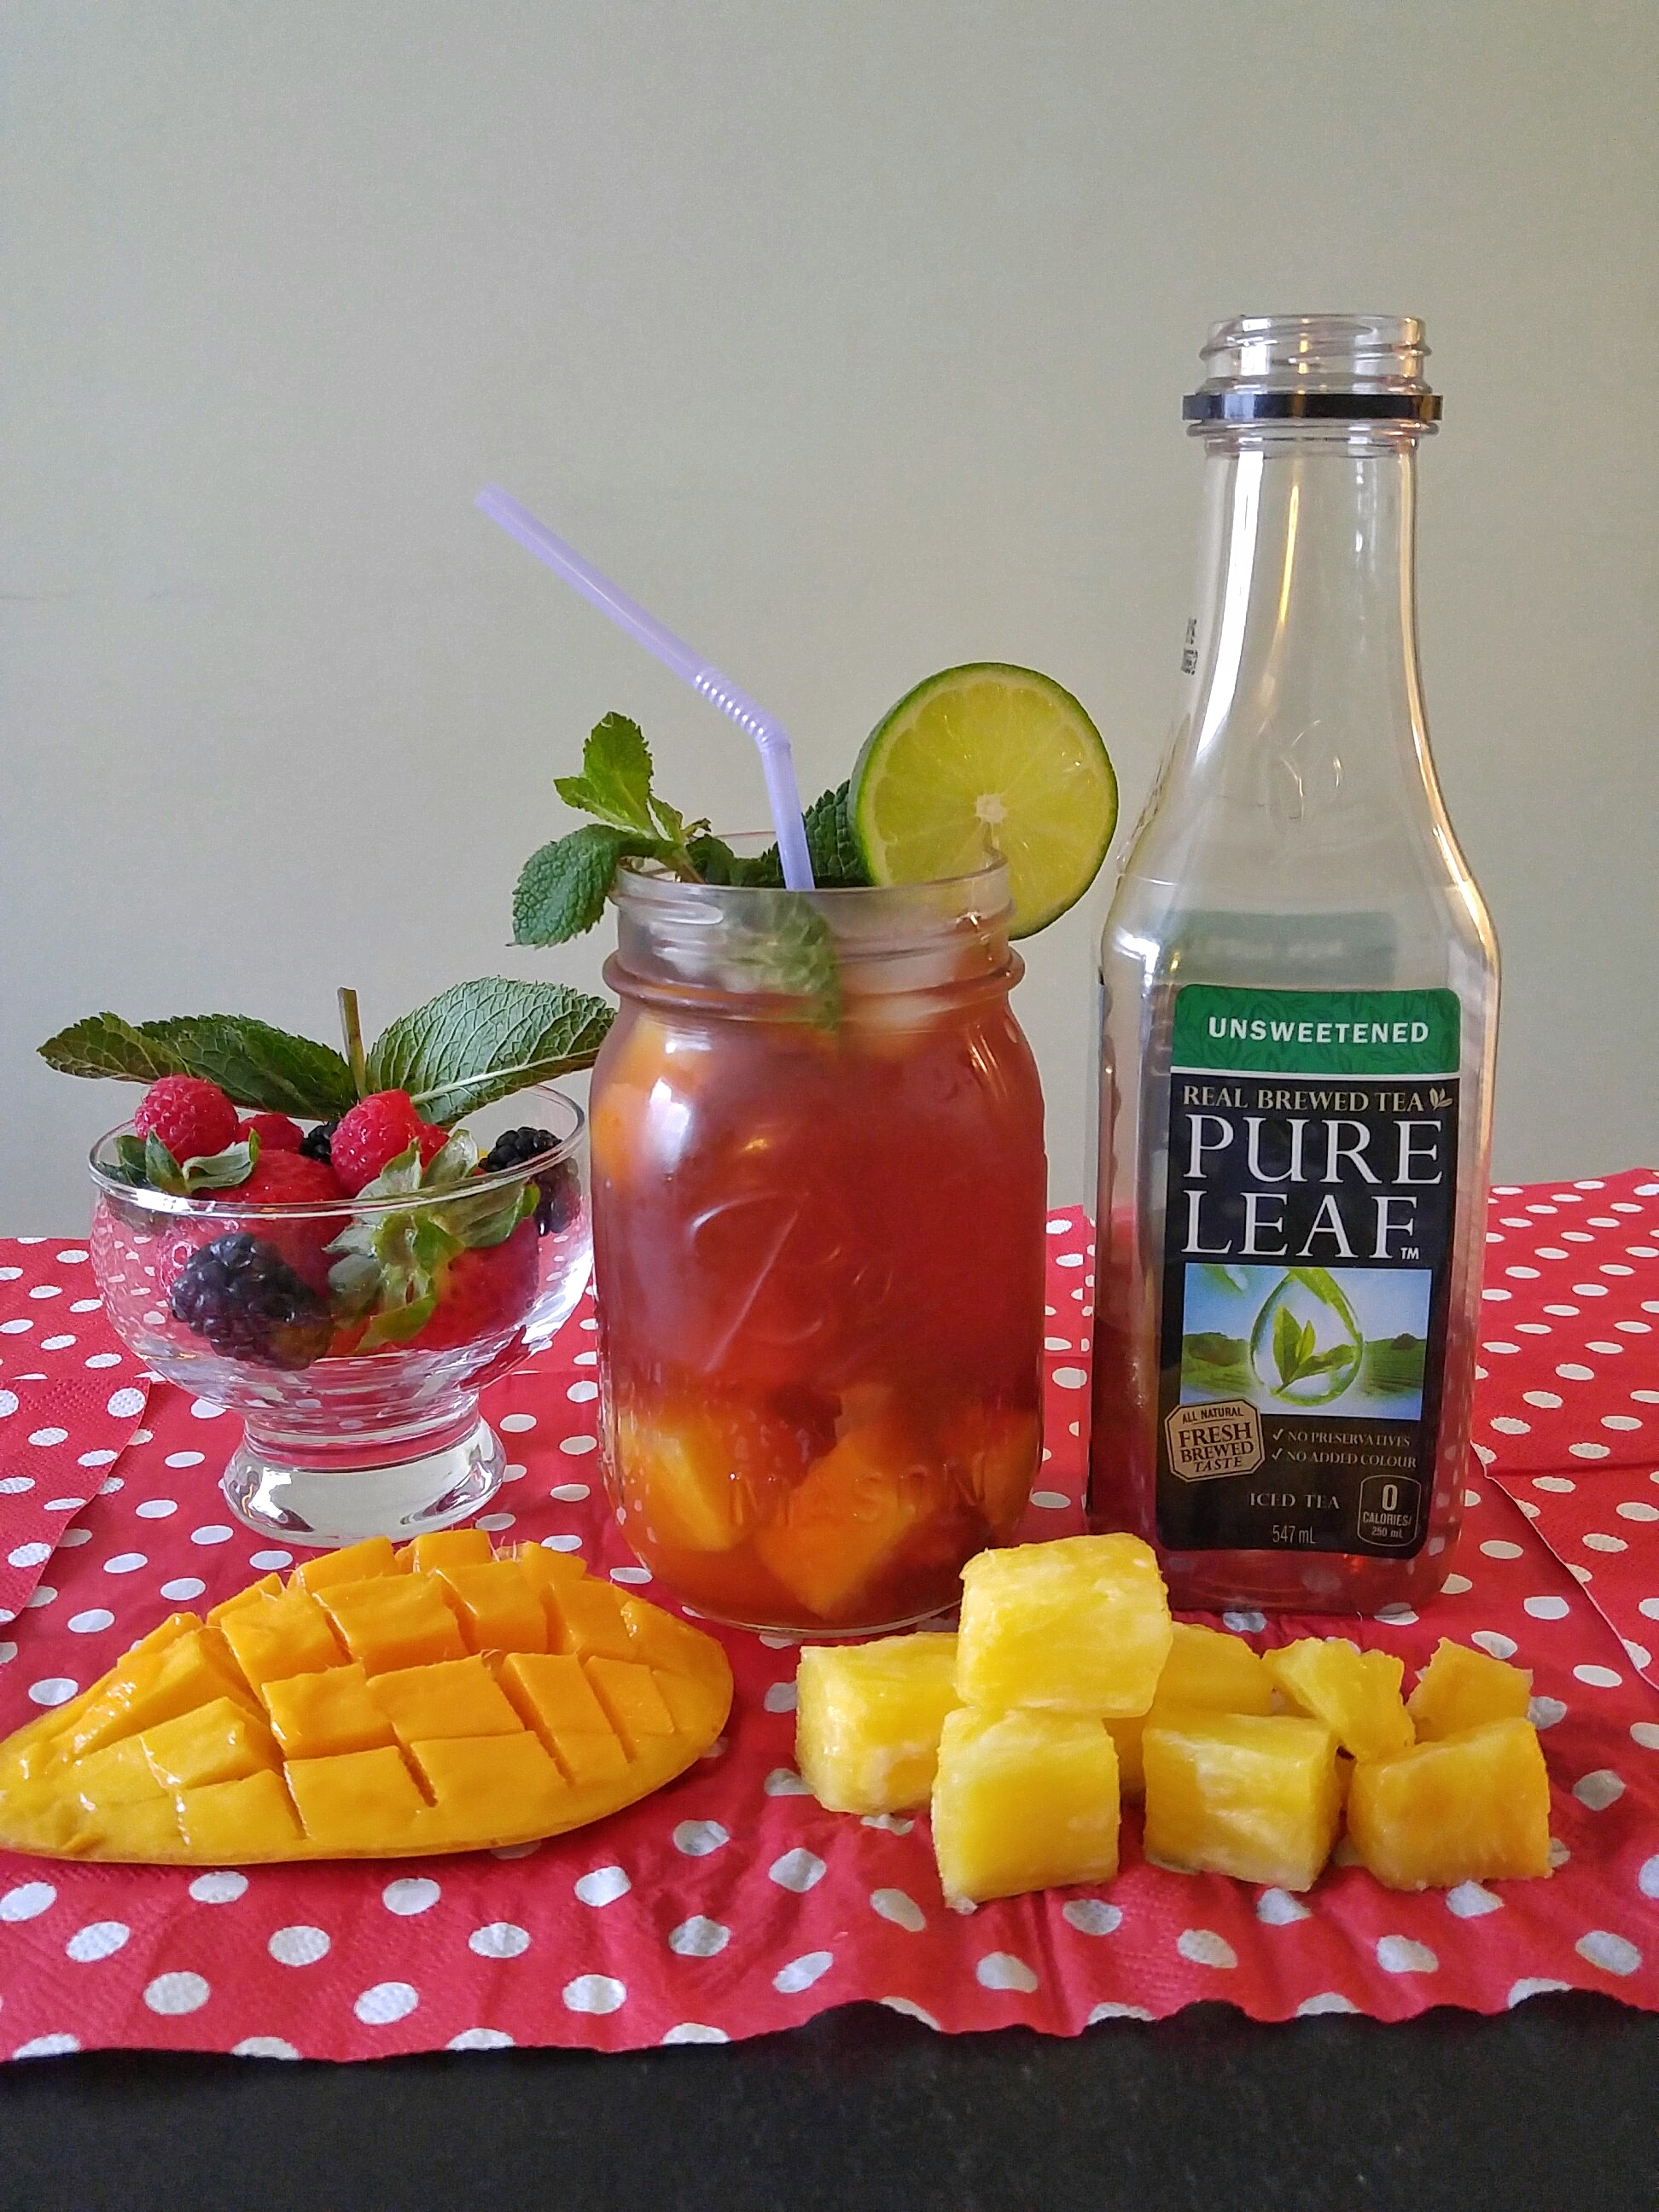 Mangoes + Pineapples mixed with Unsweetened Pure Leaf Black Tea